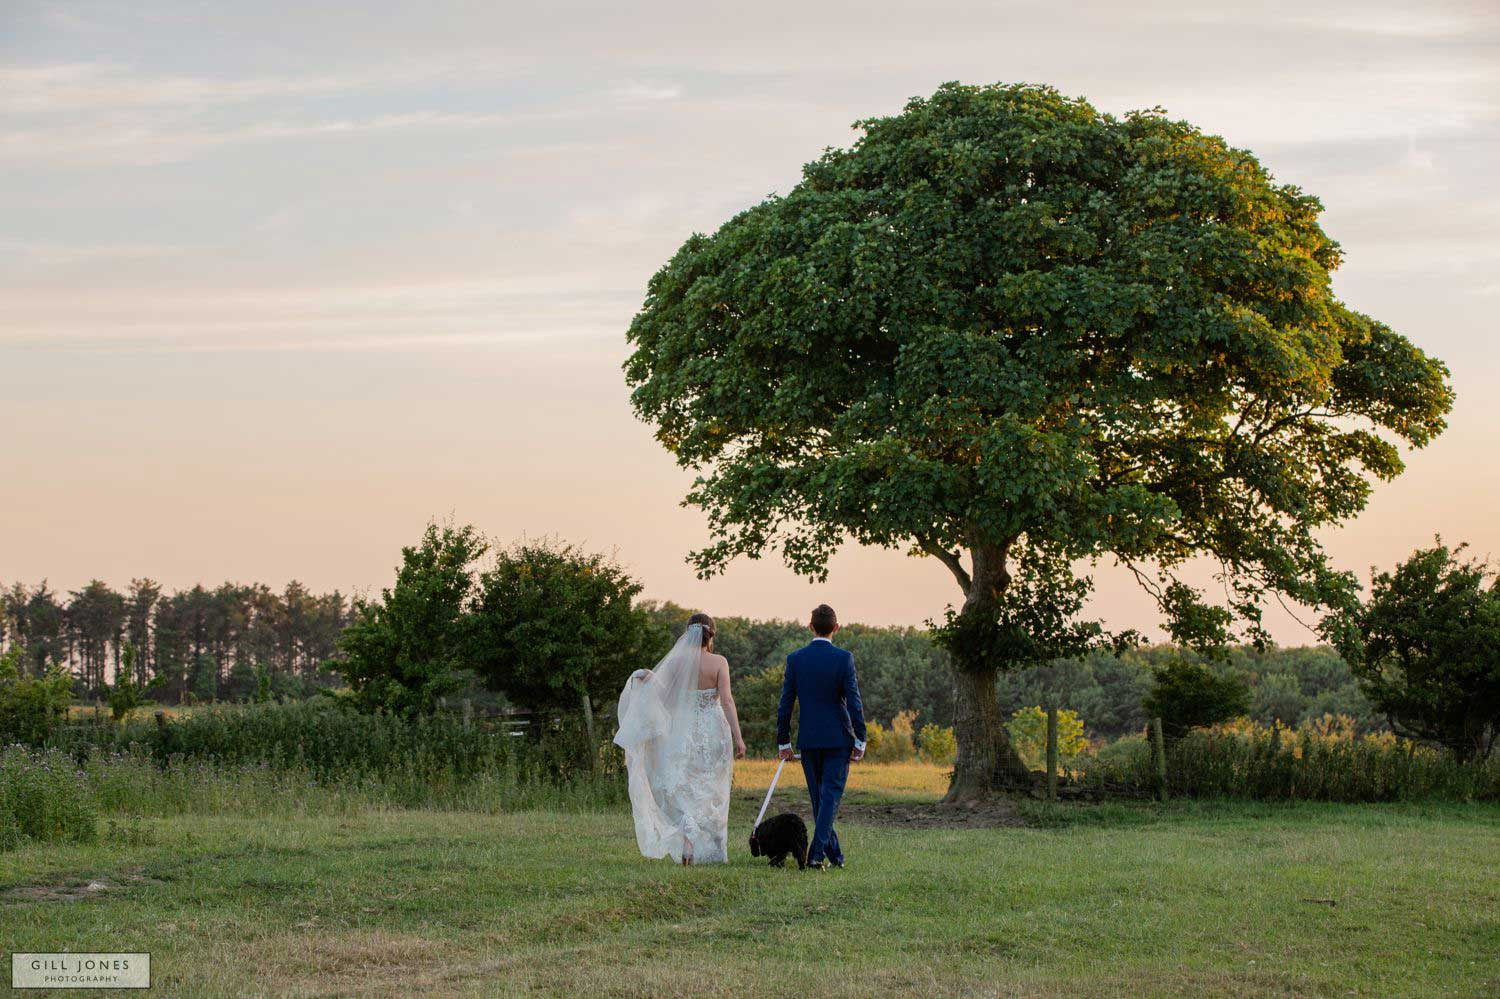 An Anglesey Farm wedding